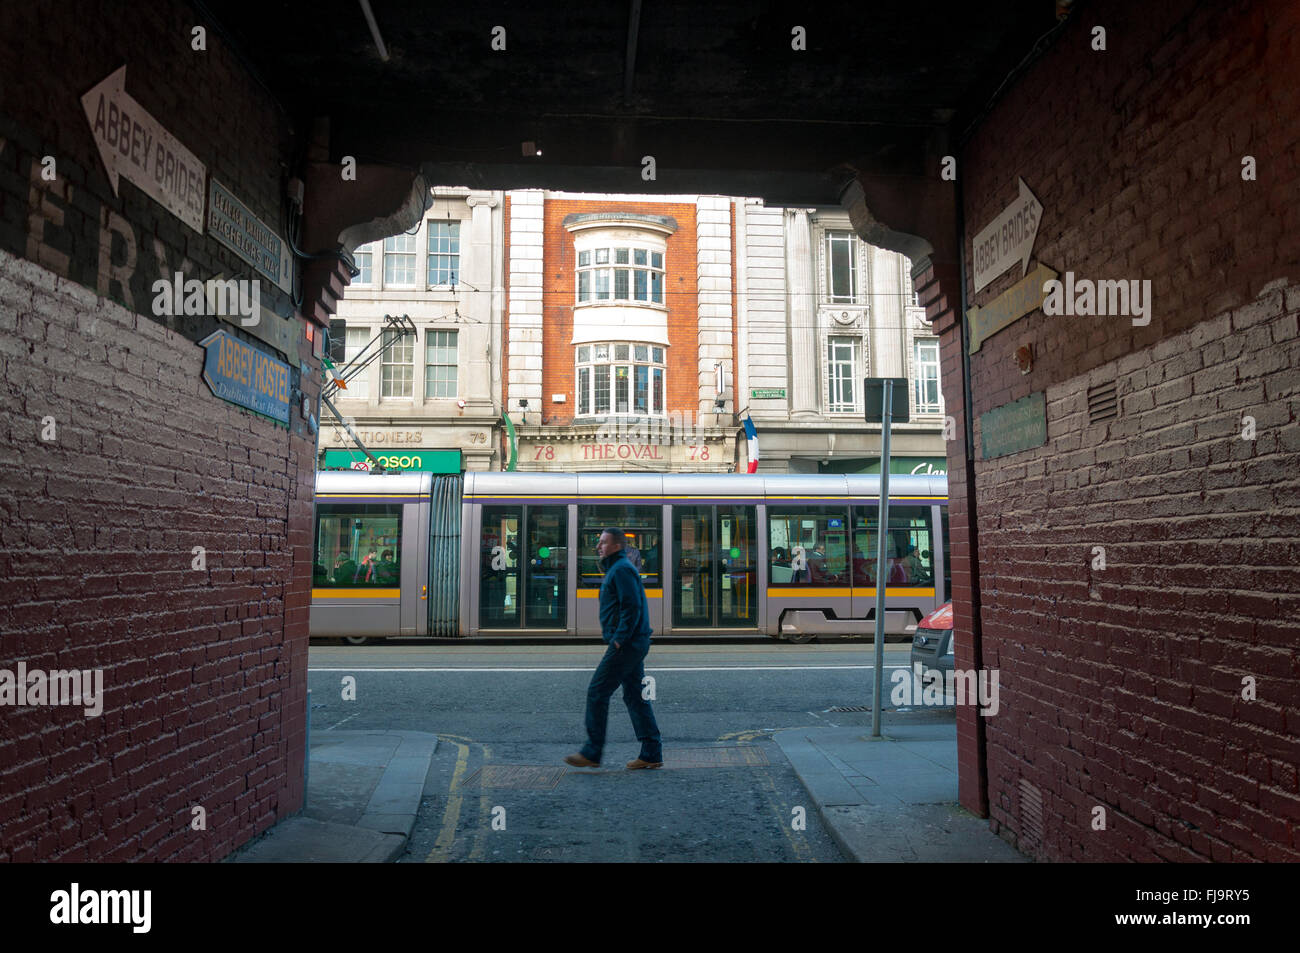 Street view and LUAS tram in Dublin, Ireland - Stock Image